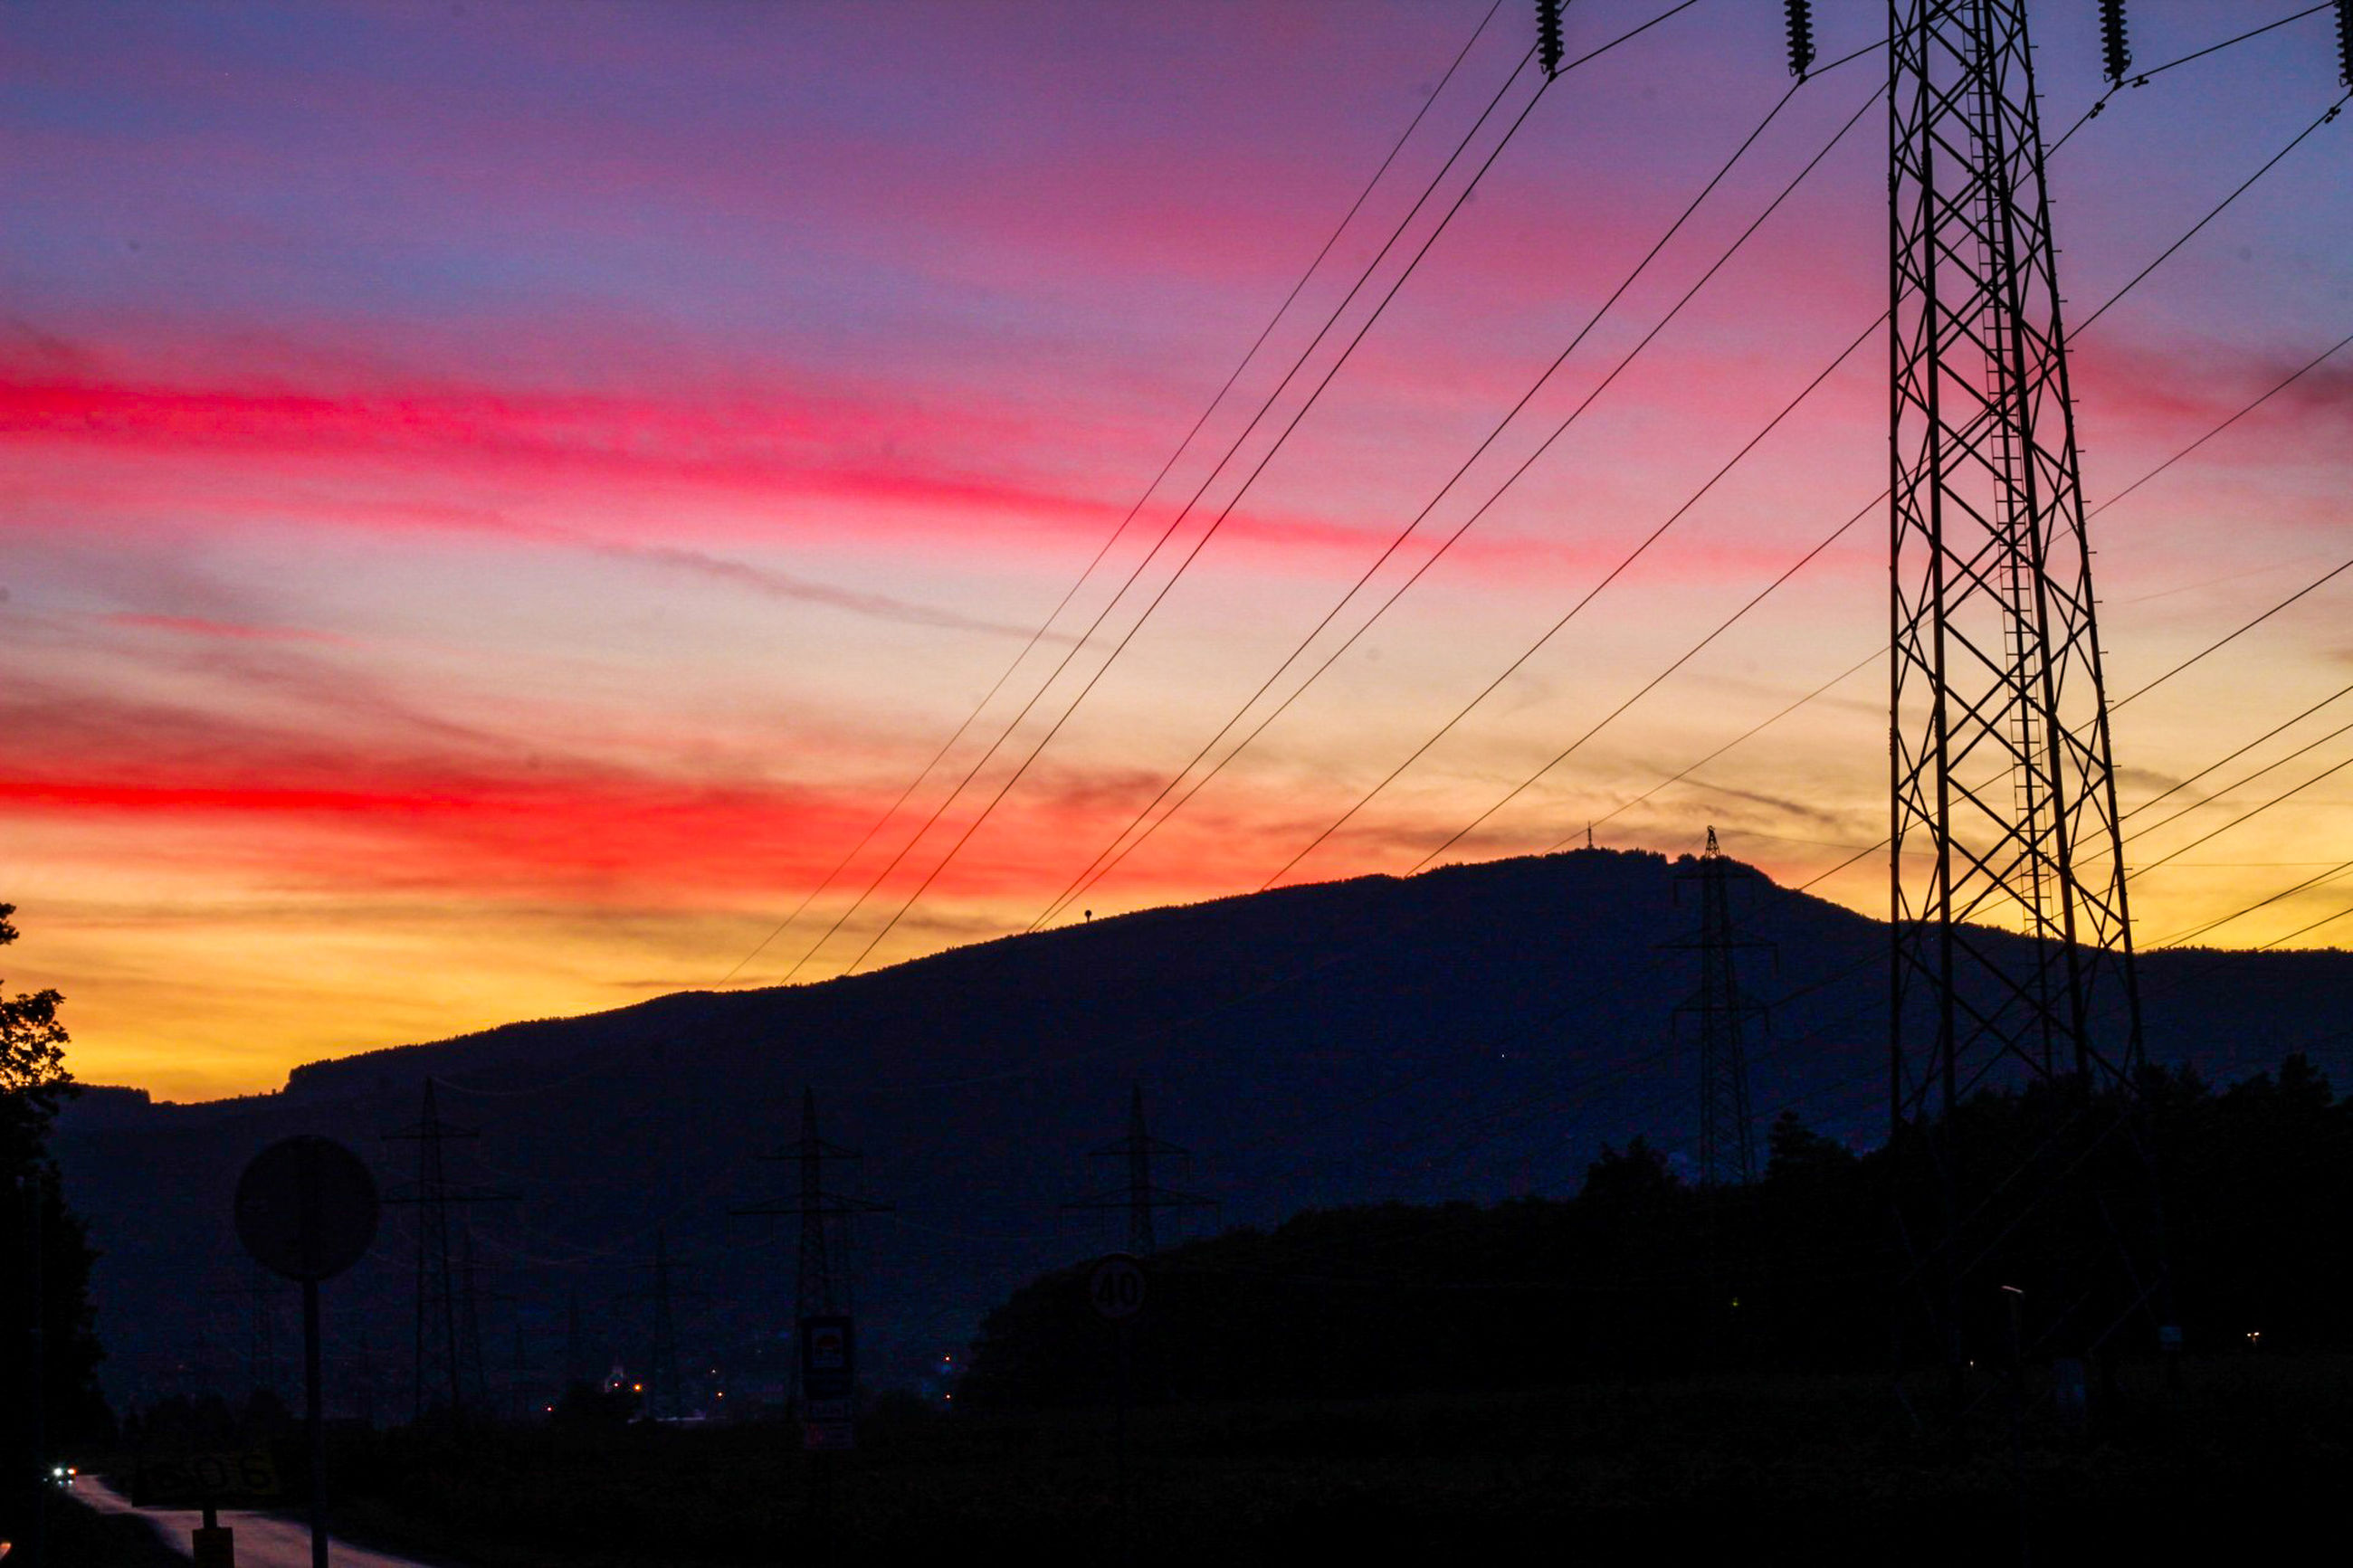 sunset, sky, silhouette, electricity, cloud - sky, cable, power line, beauty in nature, electricity pylon, technology, power supply, scenics - nature, connection, orange color, nature, no people, mountain, low angle view, fuel and power generation, tranquility, outdoors, complexity